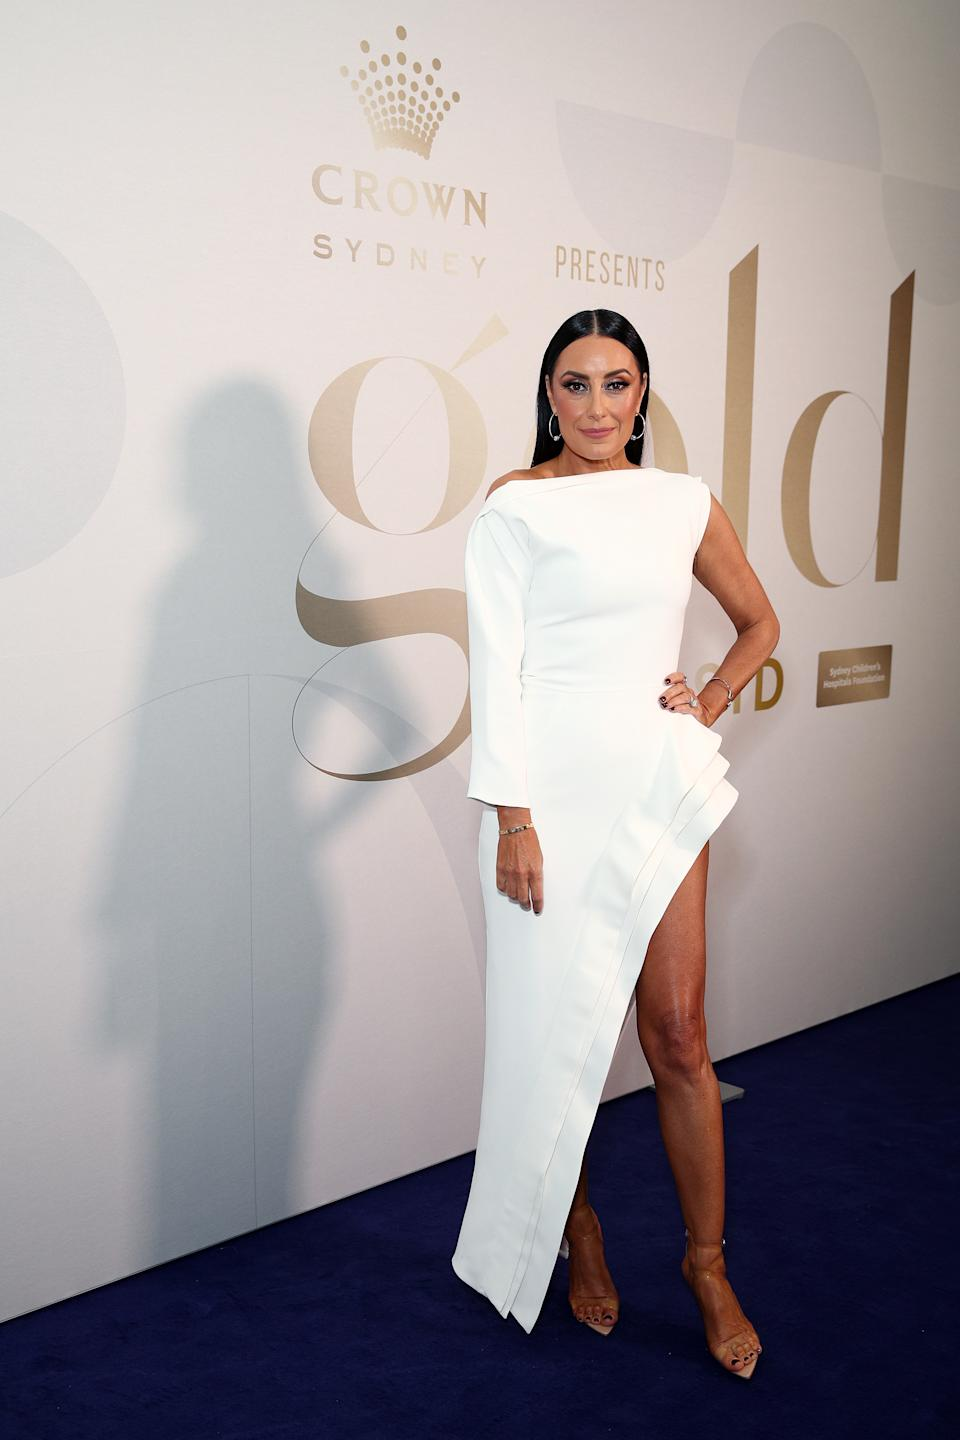 Terri Biviano wears a white gown with a thigh-high split at the Gold Dinner 2021 on June 10, 2021 in Sydney, Australia